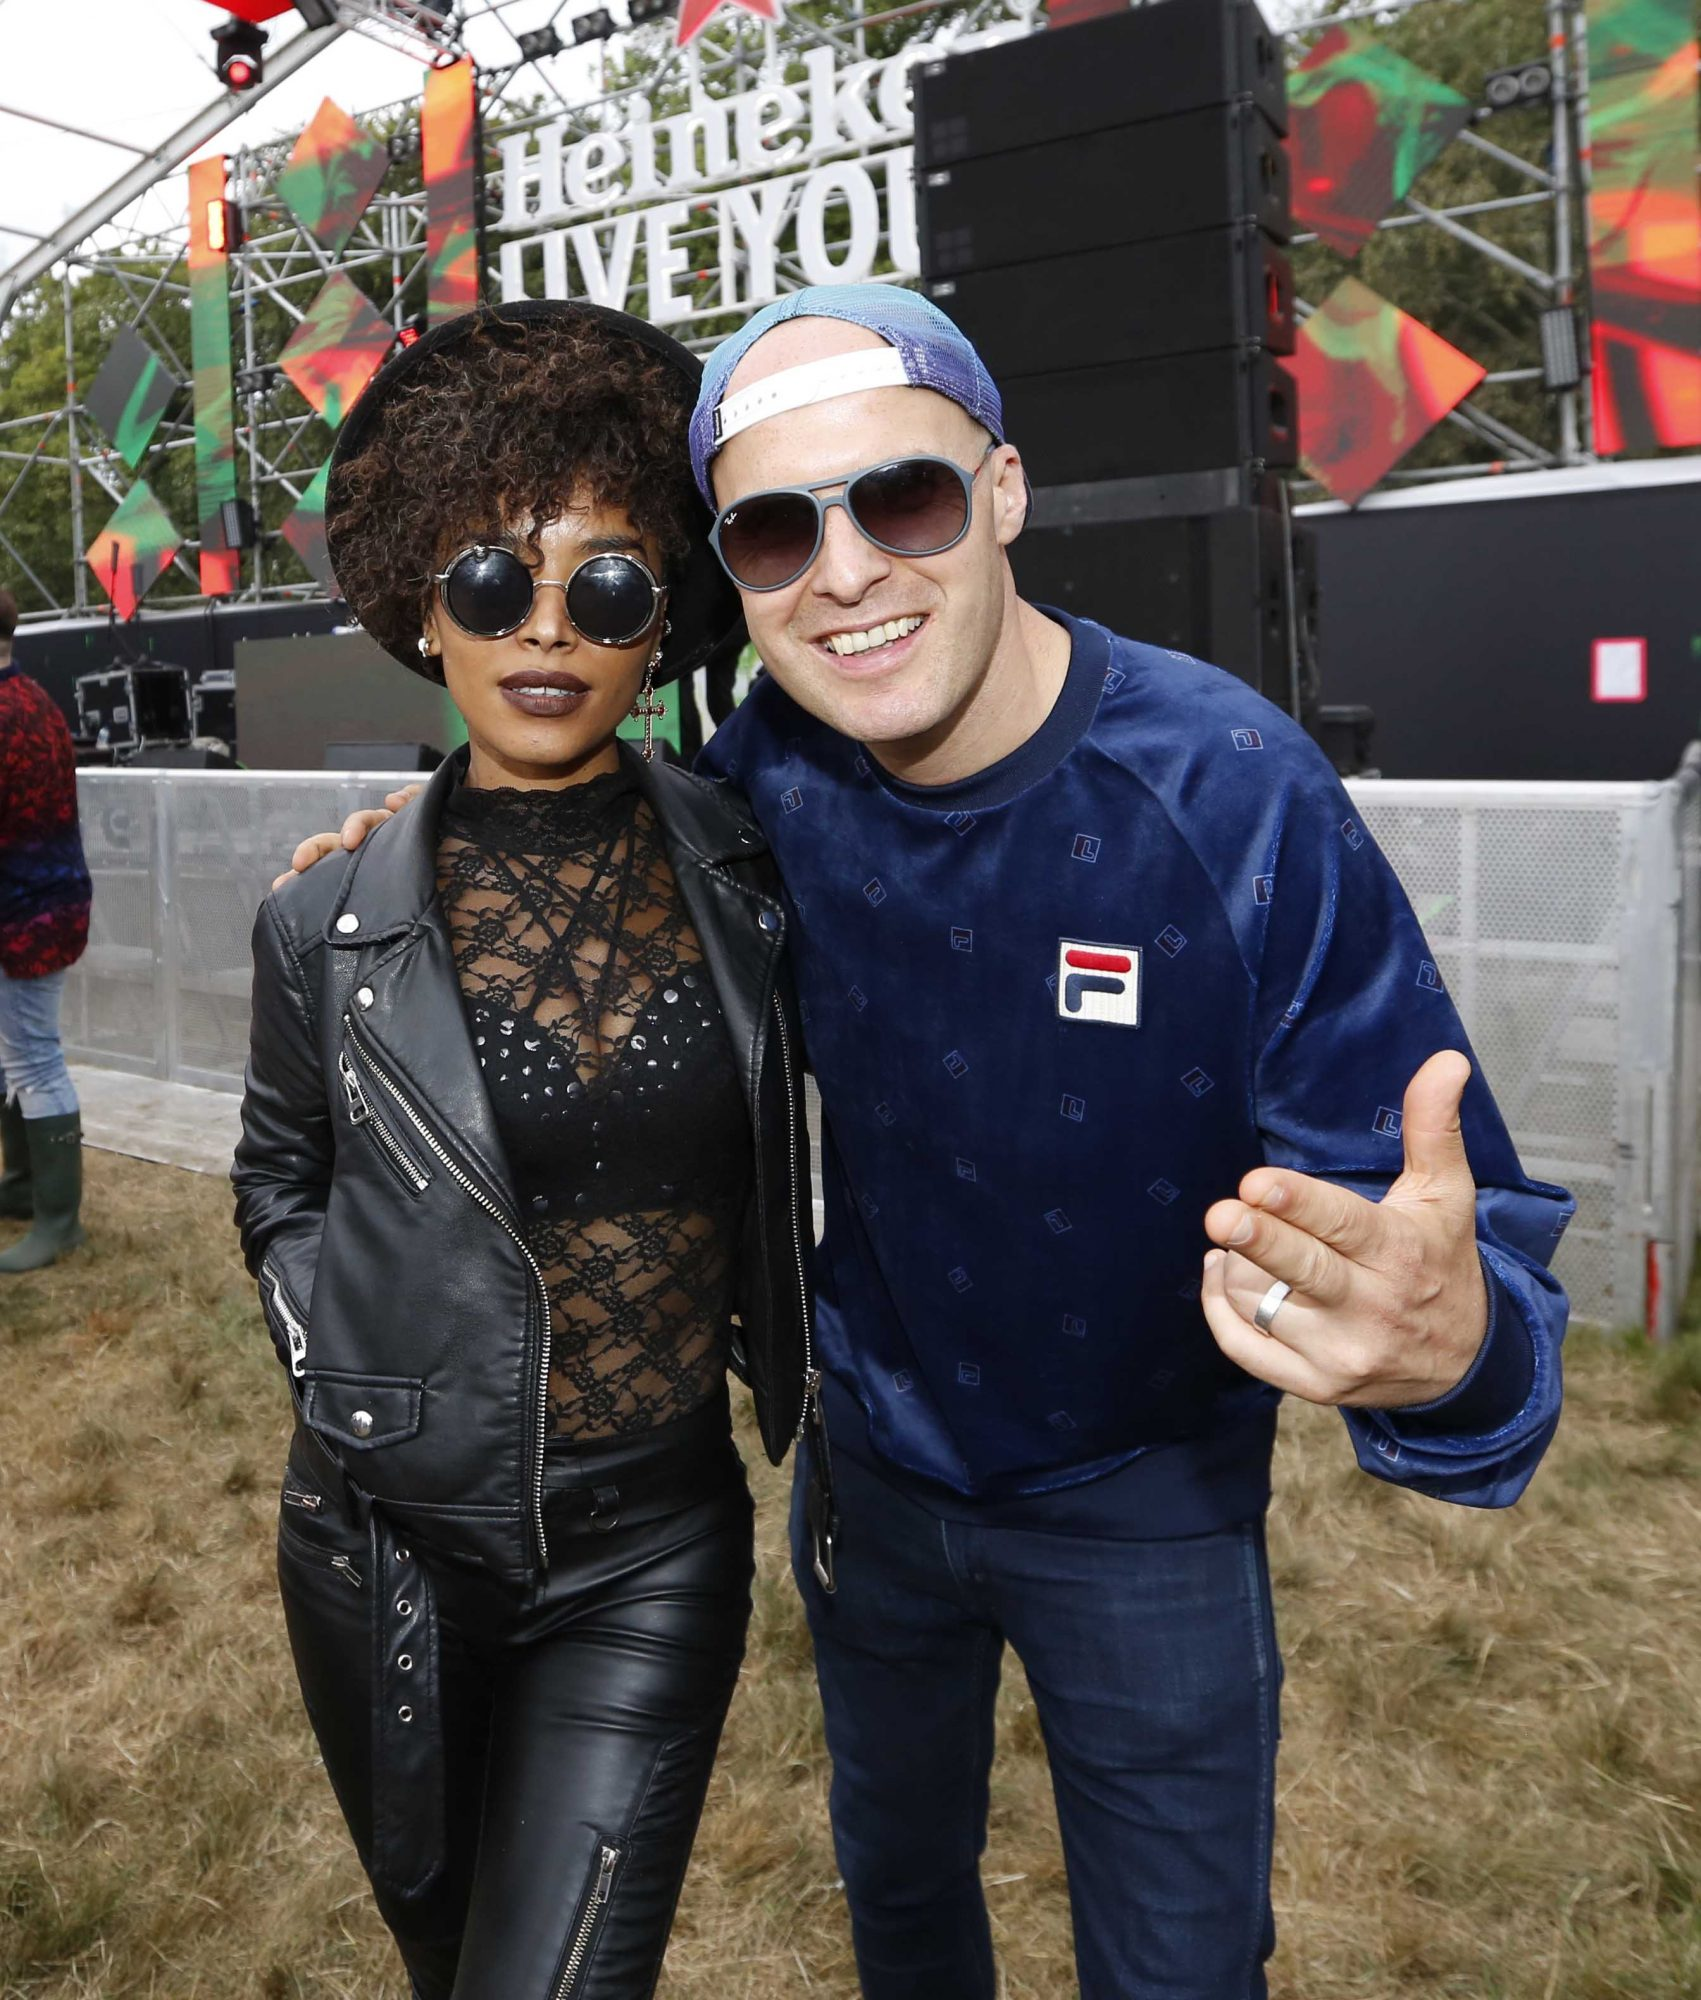 NO REPRO FEE 30/08/2019 Heineken Live Your Music Stage at Electric Picnic 2019. Pictured are (LtoR) Stevie G & Andrea Williams at the Heineken Live Your Music Stage at Electric Picnic 2019. This year's area is an enormous structure on two levels, with a glass roof that will keep festival-goers dry but let them dance beneath the sun and stars! The immersive and interactive lightshow has been reimagined for 2019 which, combined with the state-of-the-art soundsystem, make Live Your Music the most impressive festival stage in the country. Photo: Sasko Lazarov/Phorocall Ireland